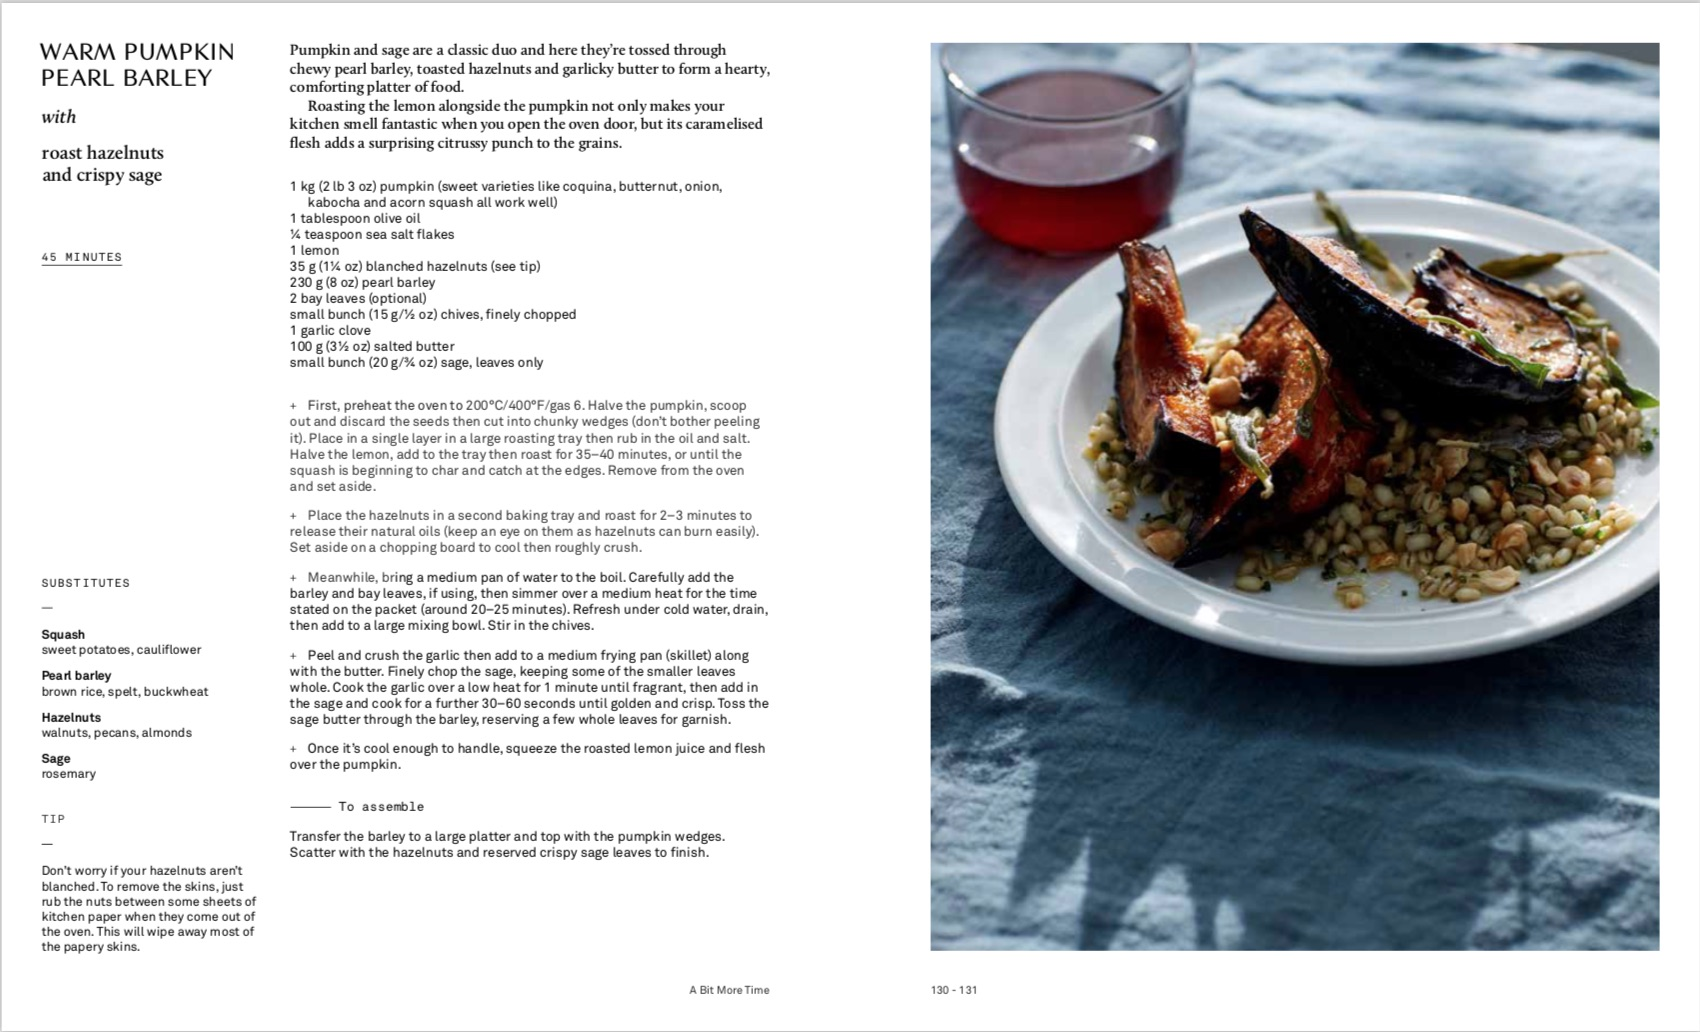 By Jessica Elliott Dennison from Salad Feasts: How to assemble the perfect meal copyright Hardie Grant Books 2018